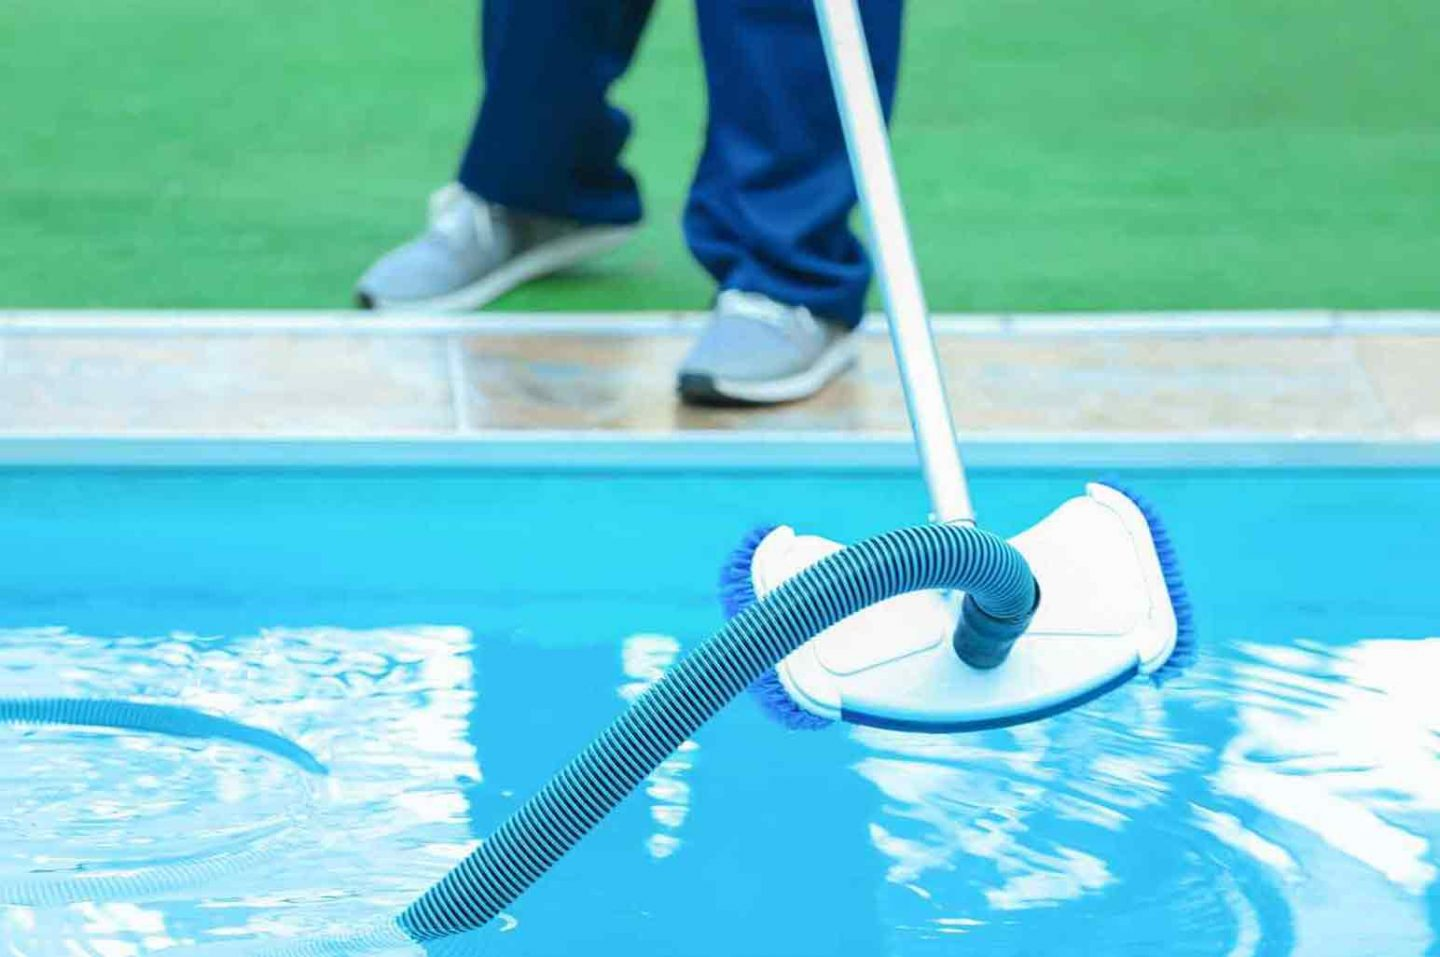 How to Properly Take Care and Maintain Your Pool